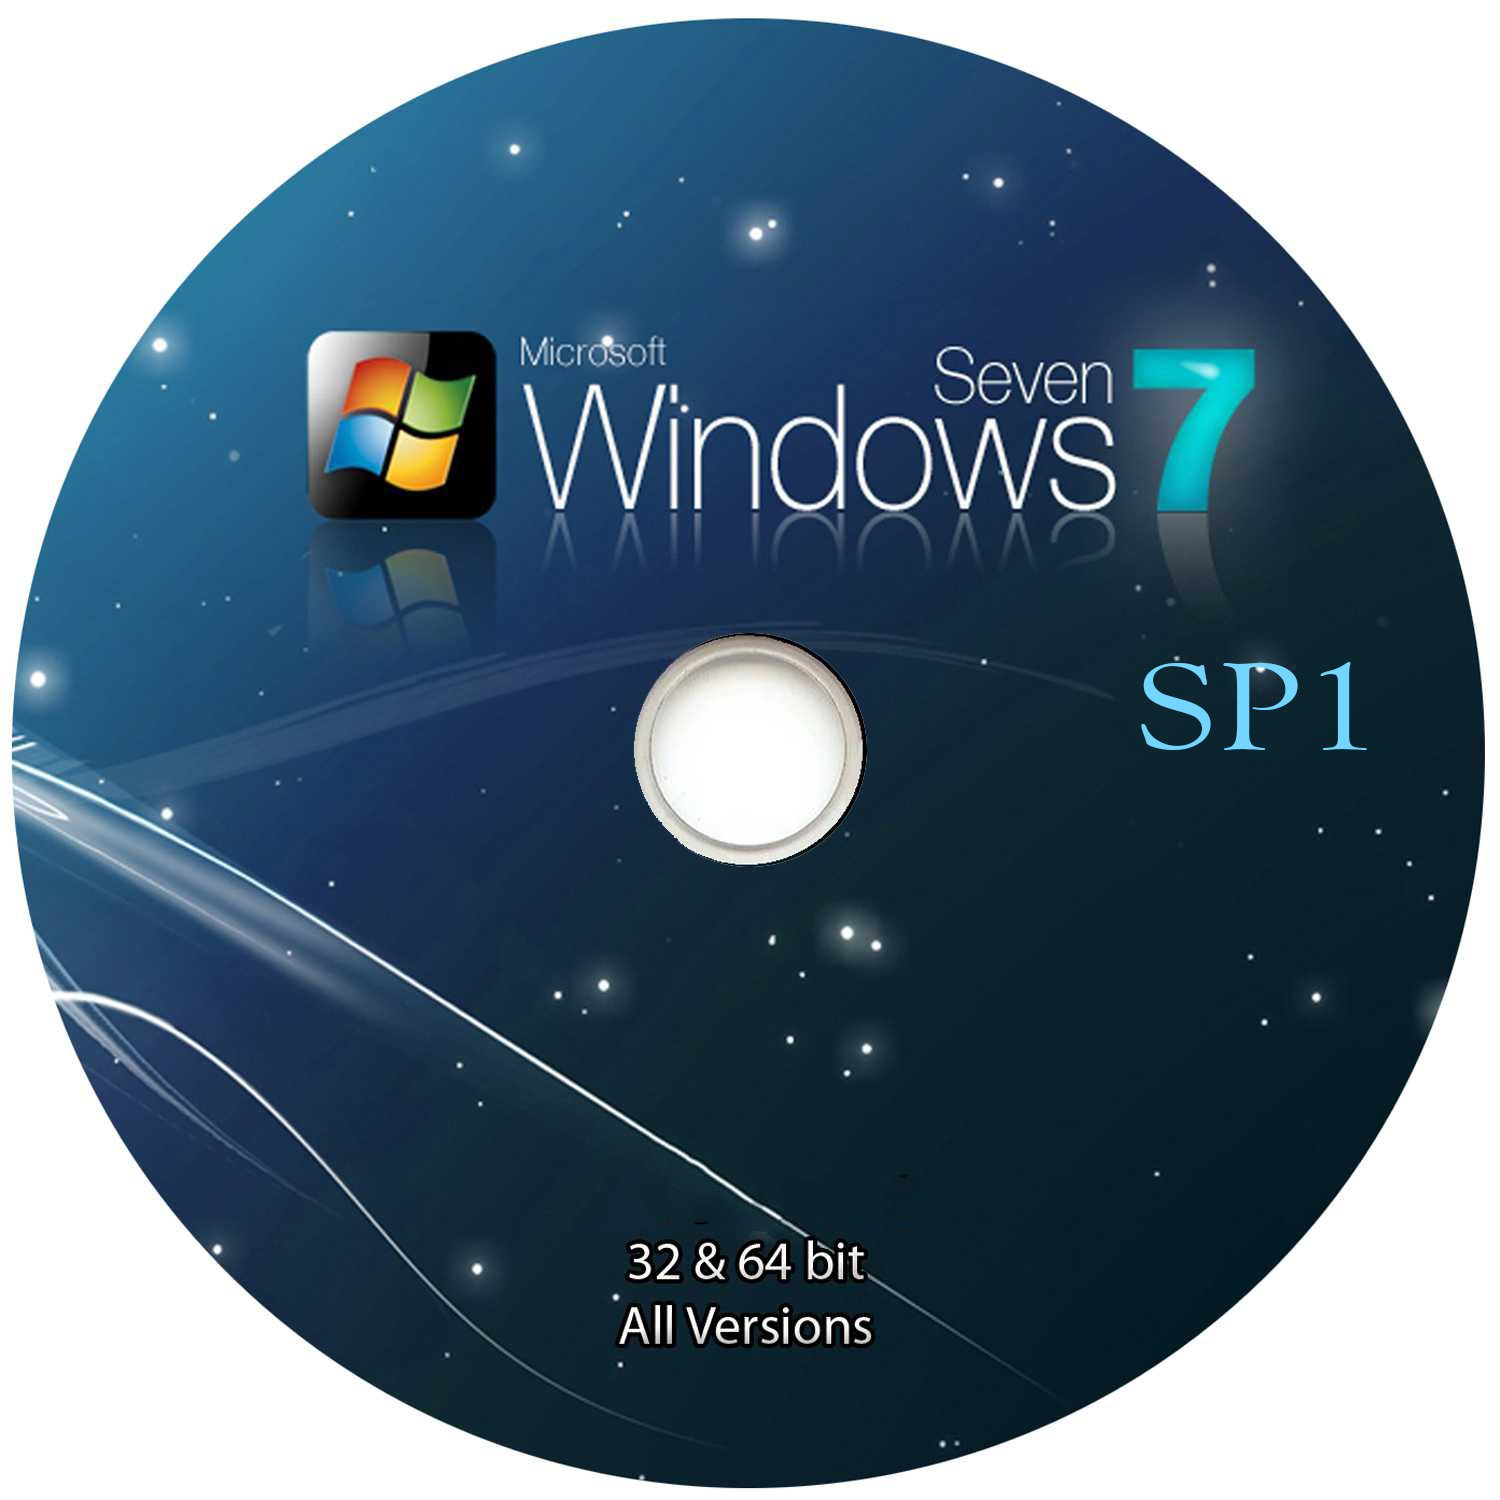 WINDOWS 7 32/64 BIT all-in-one PRE-ACTIVATED NO CODES NEEDED